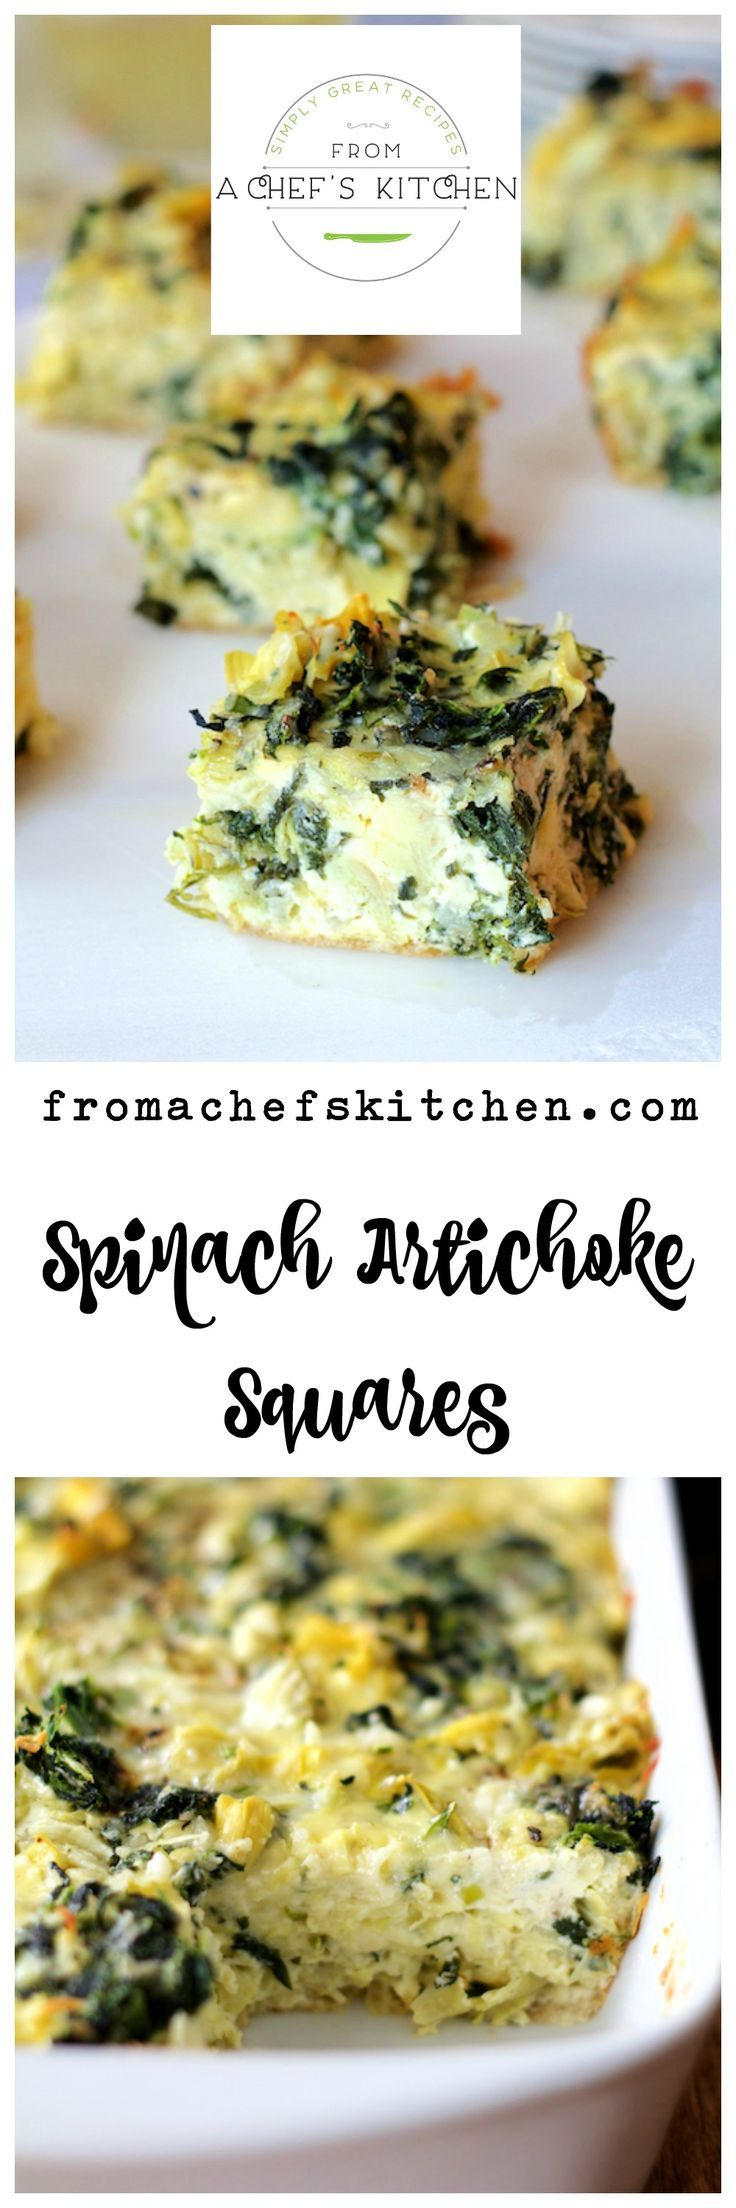 This busy holiday season, you need easy and delicious!  My Spinach - Artichoke Squares deliver on both!